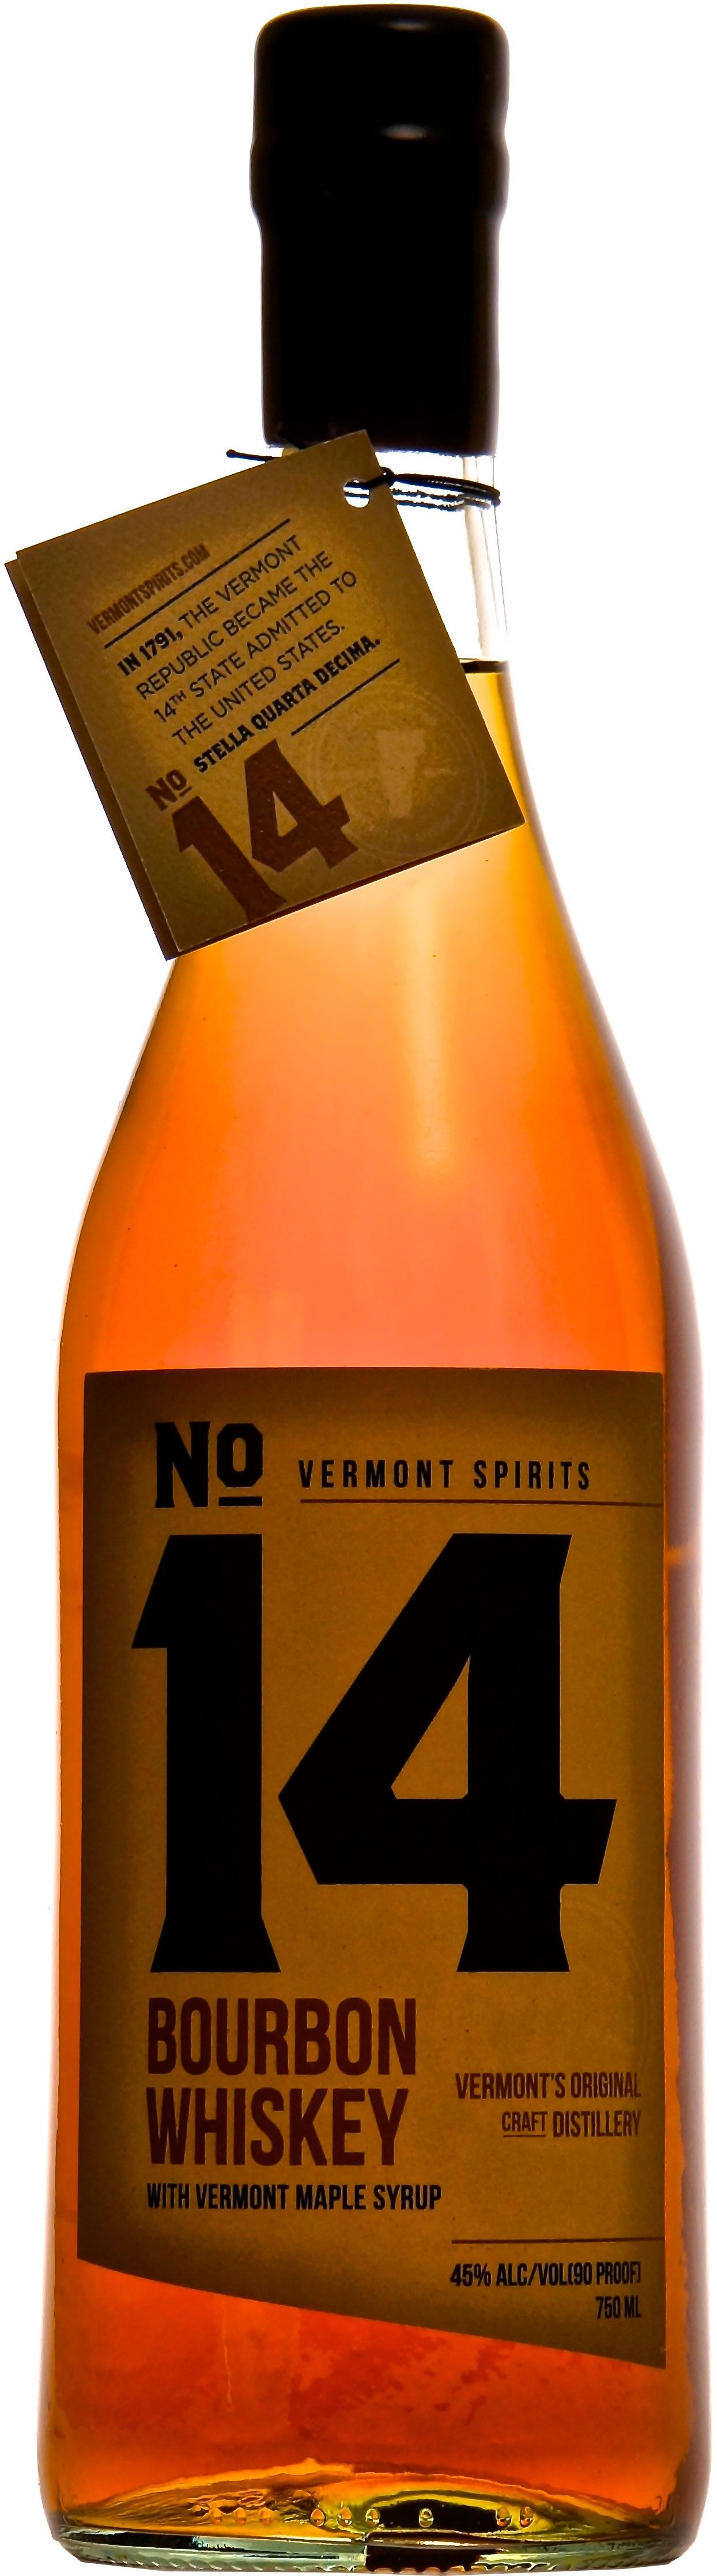 Vermont Spirits No. 14 Bourbon. Aged for a minimum of five years, this #bourbon #whiskey is blended together with maple syrup handcrafted in Vermont. | @Caskers